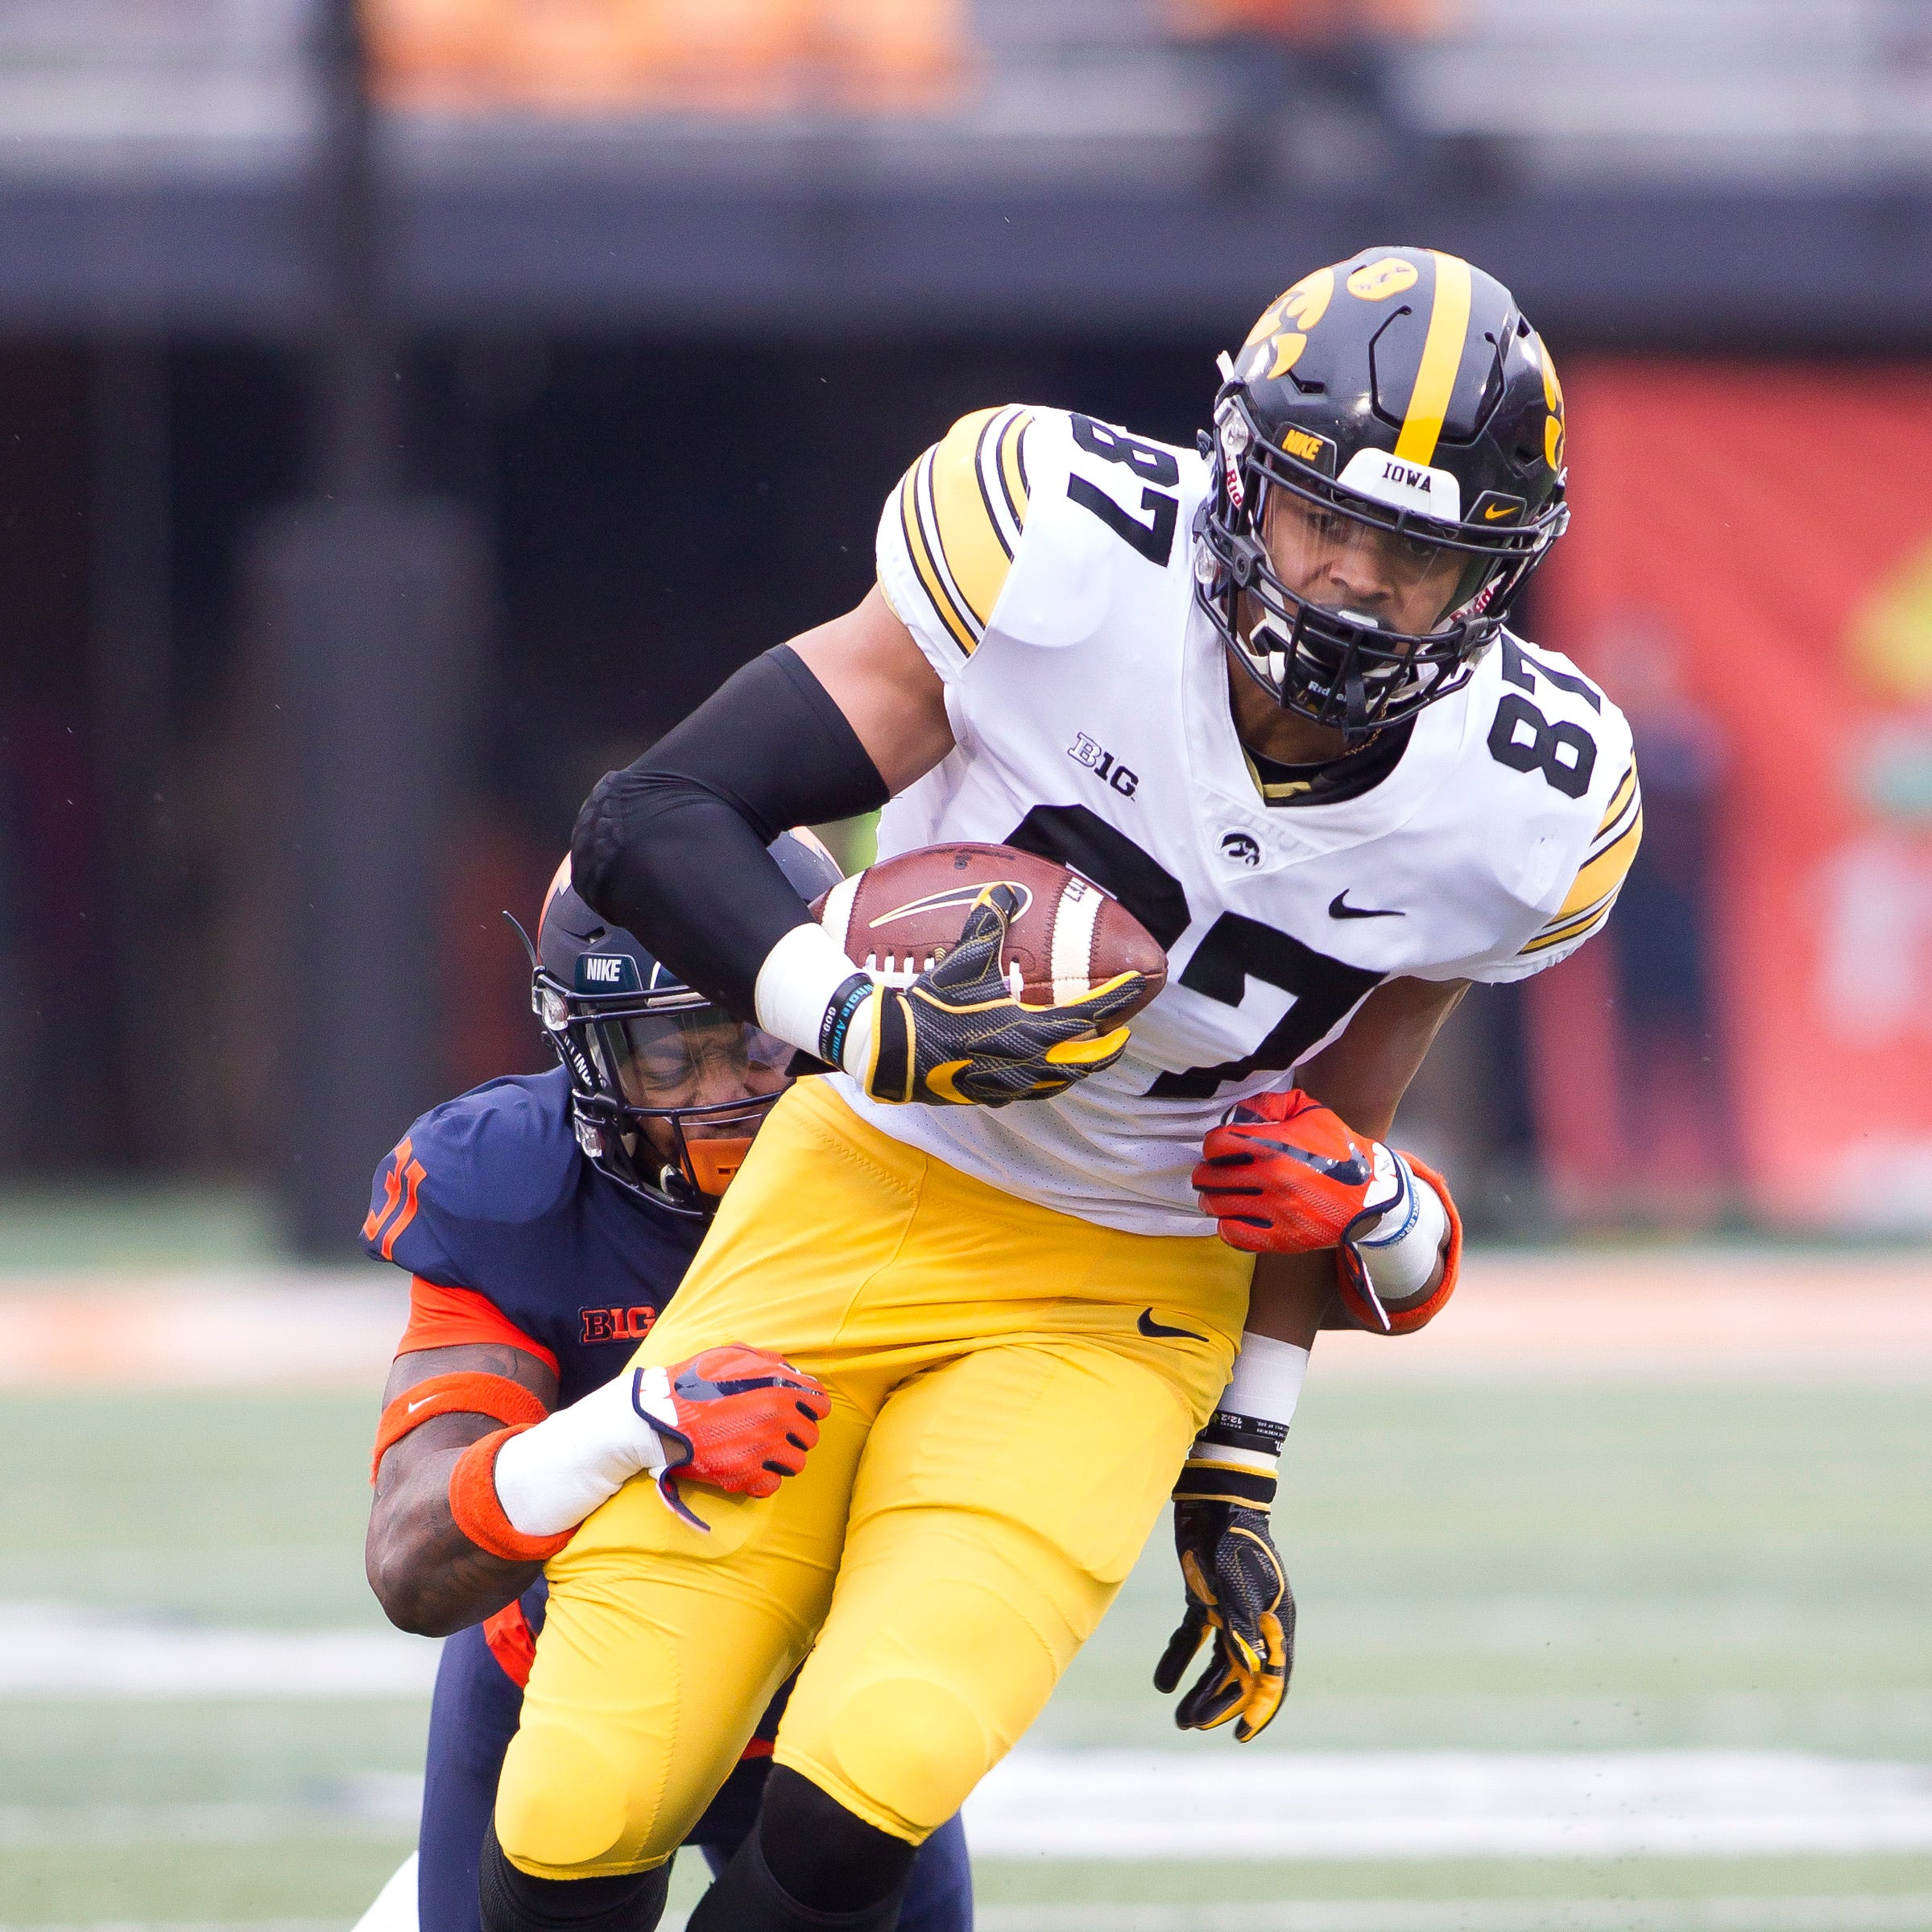 Nov 17, 2018; Champaign, IL, USA; Illinois Fighting Illini defensive back Cameron Watkins (31) tackles Iowa Hawkeyes tight end Noah Fant (87) during the first quarter at Memorial Stadium.